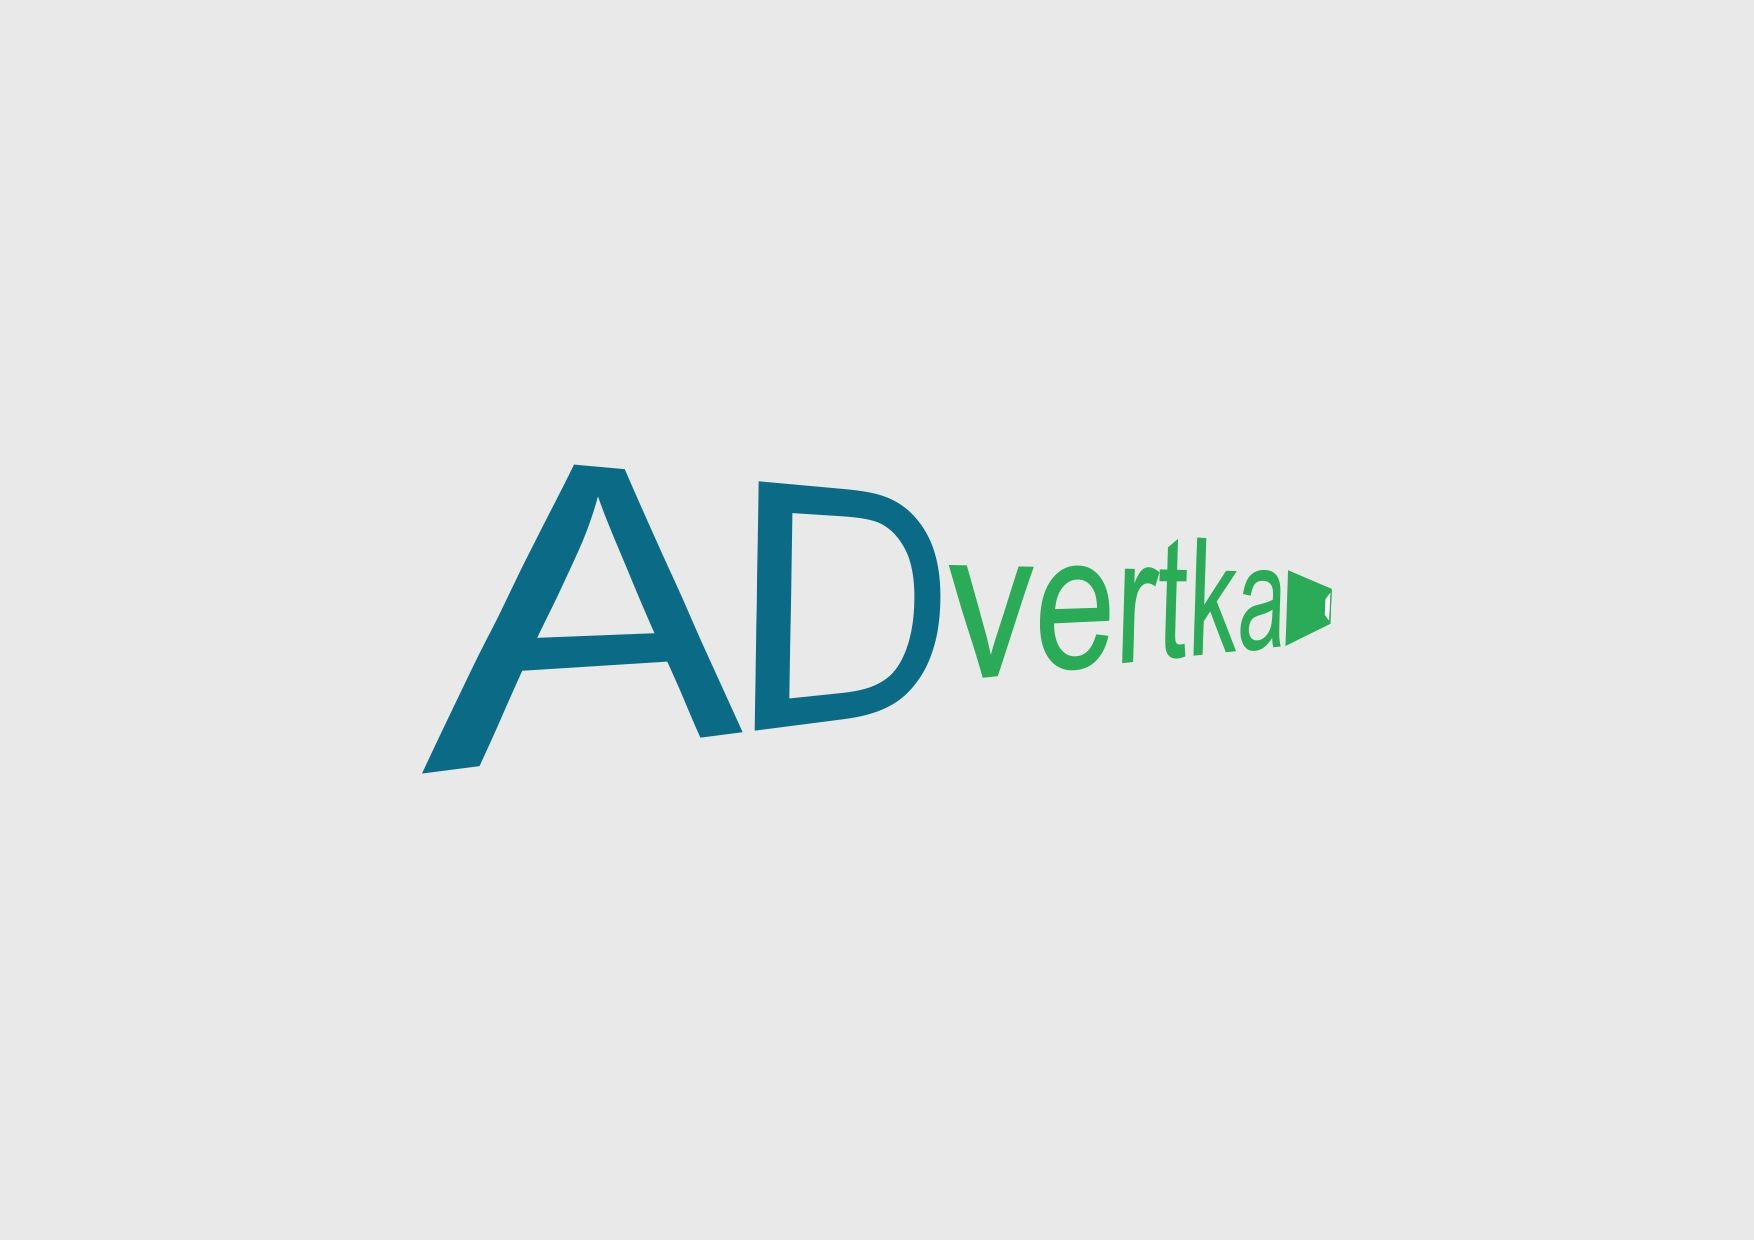 логотип для интернет агентства ADvertka - дизайнер toster108